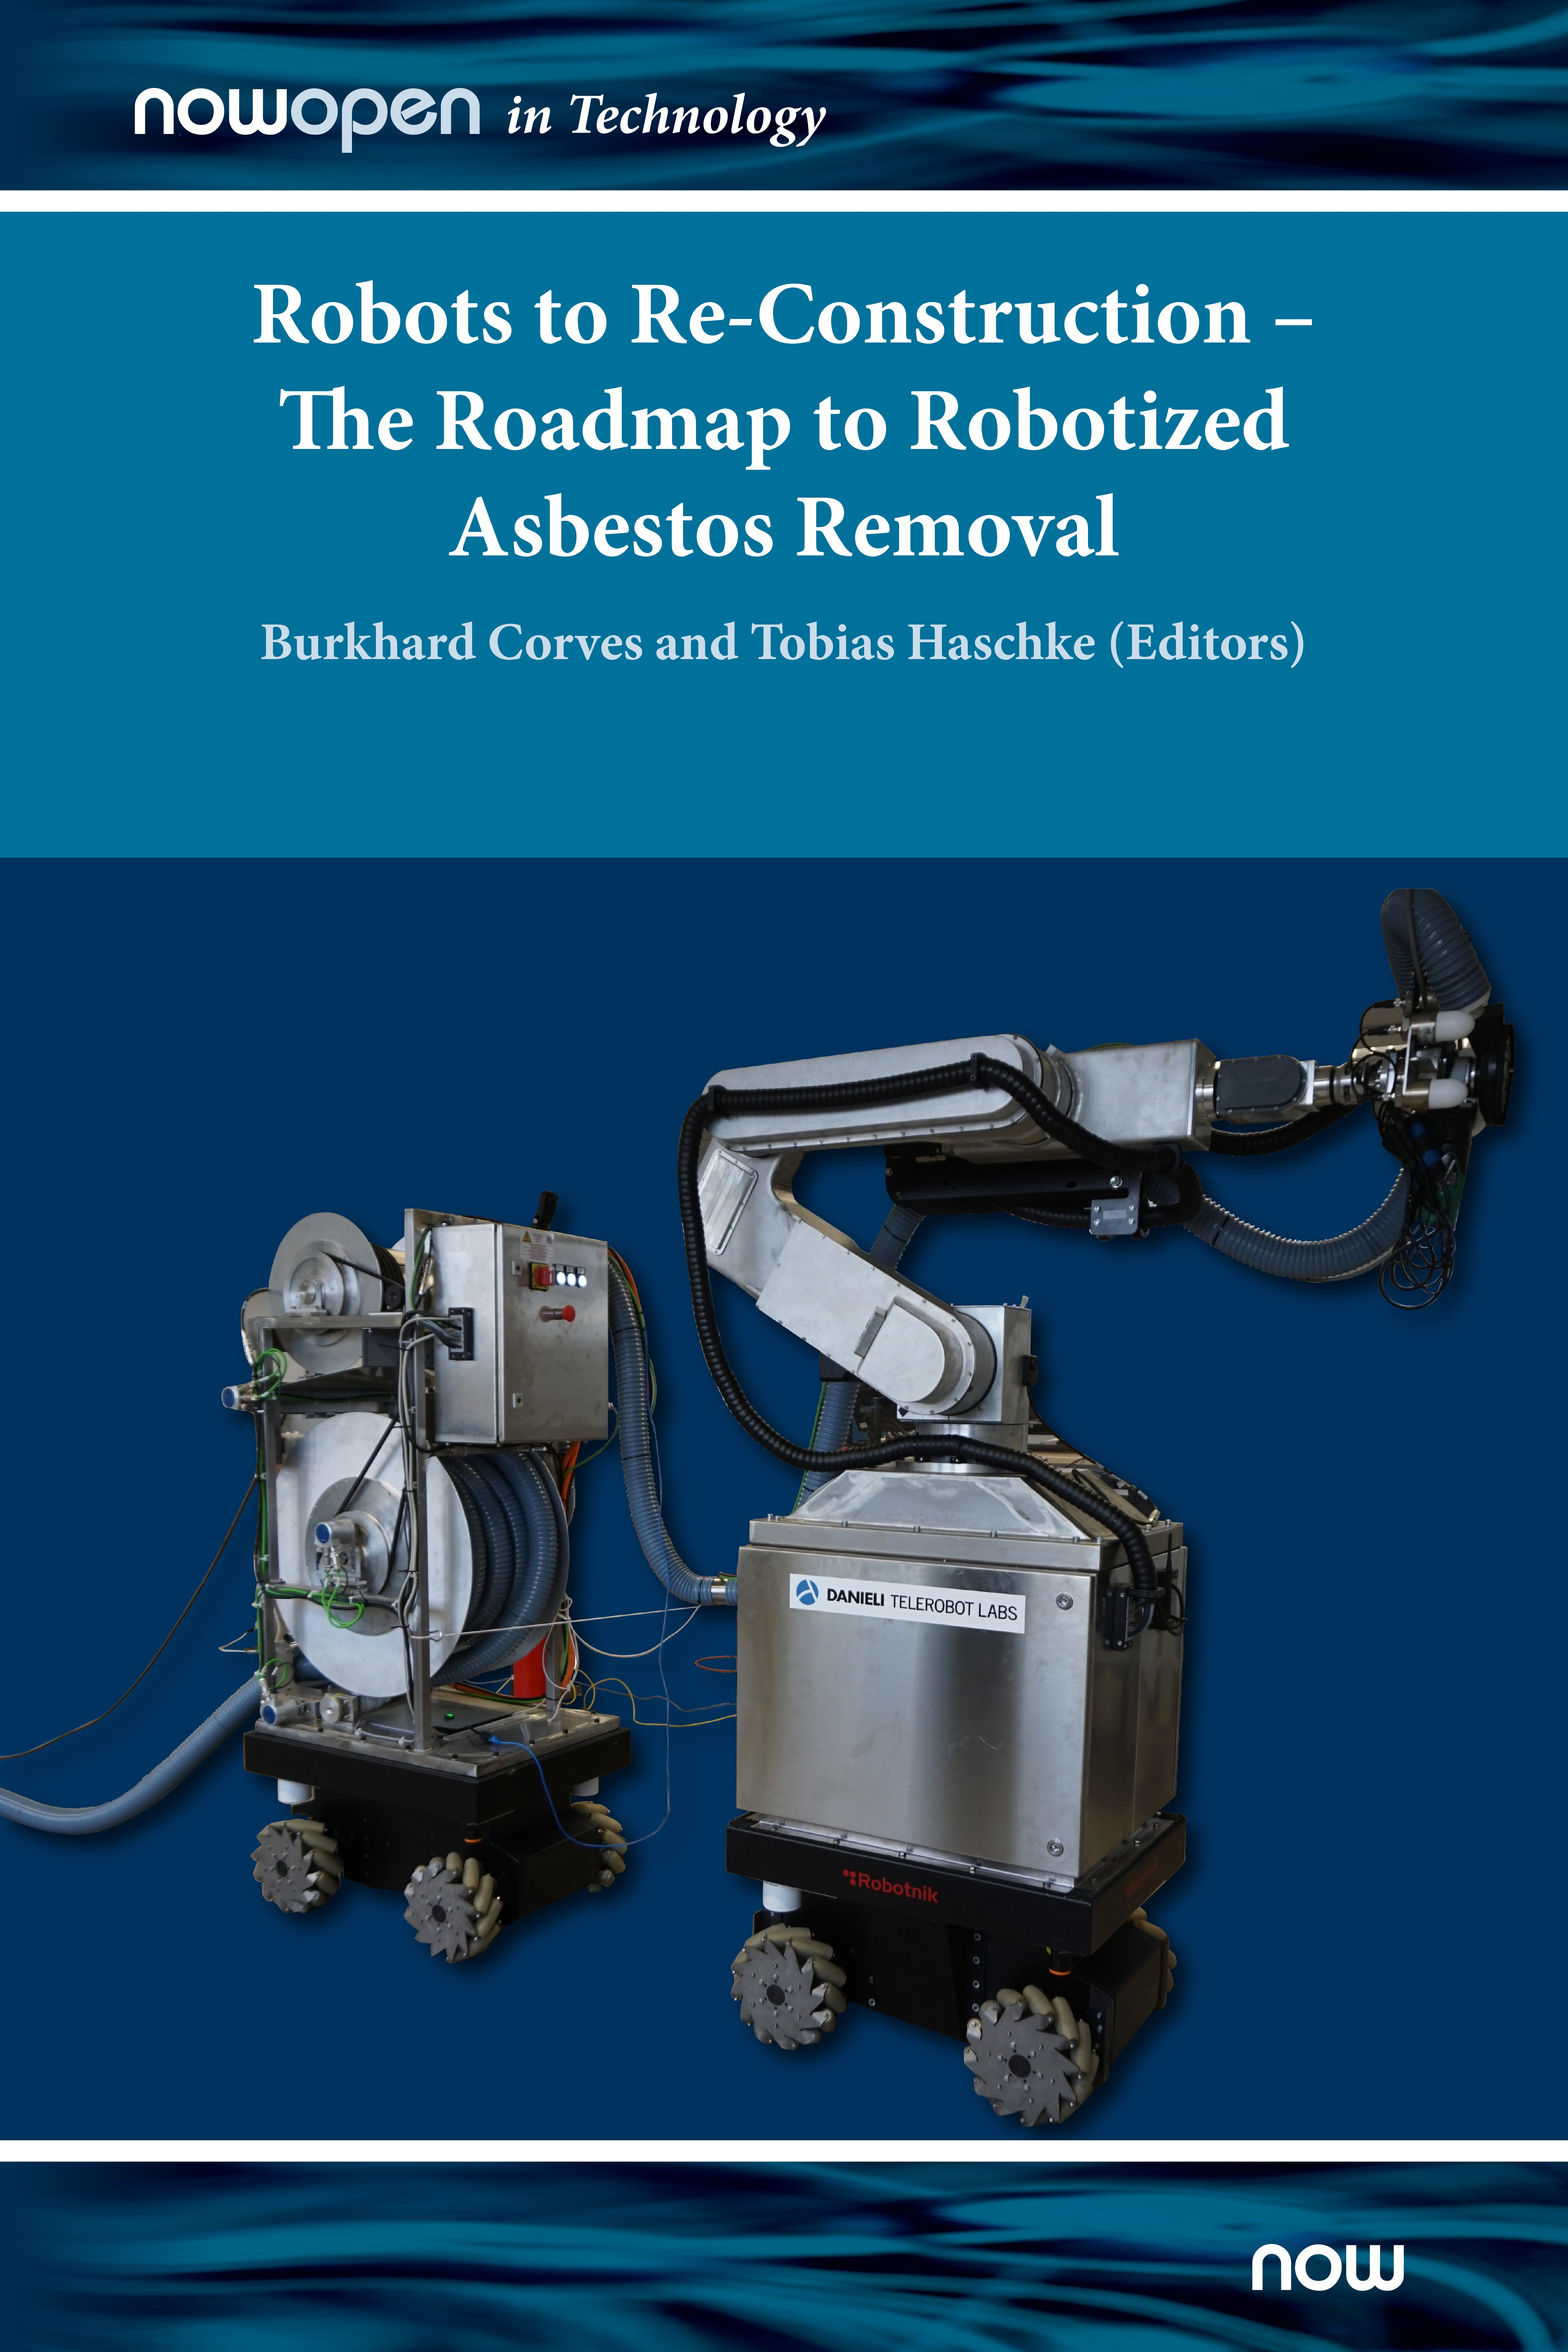 Roadmap to Robotized Asbestos Removal